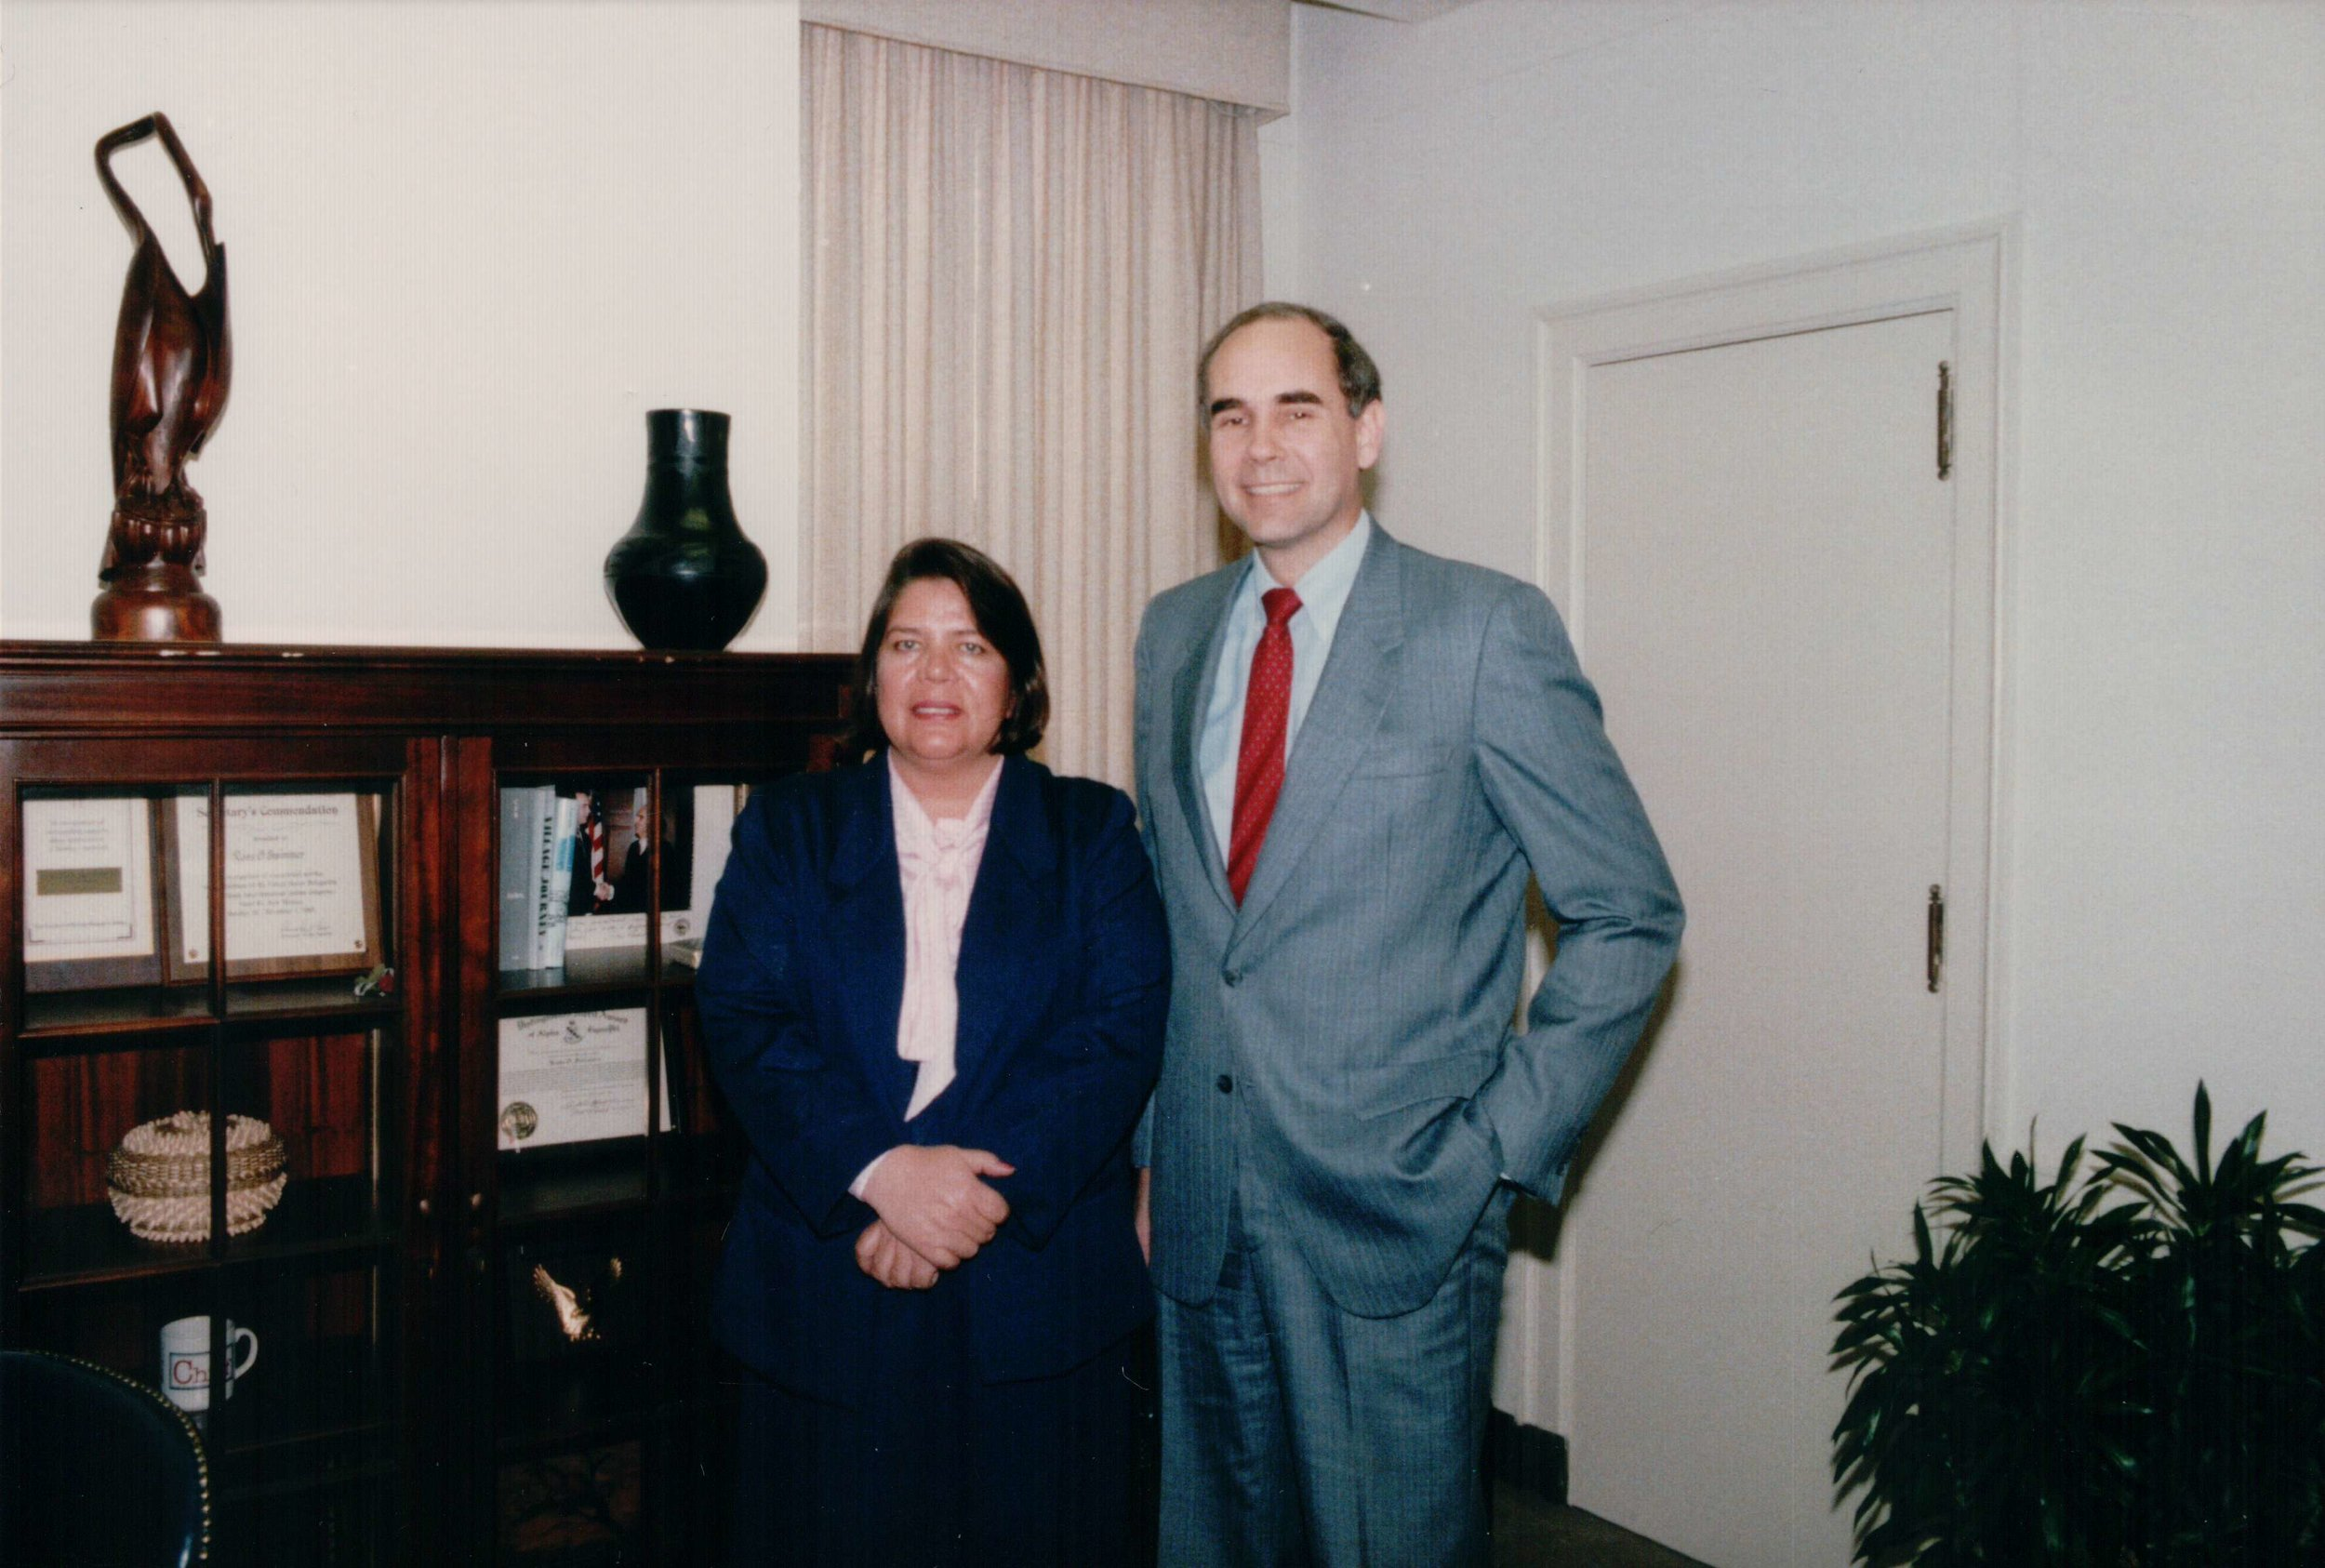 Wilma Mankiller and Ross Swimmer pose in office